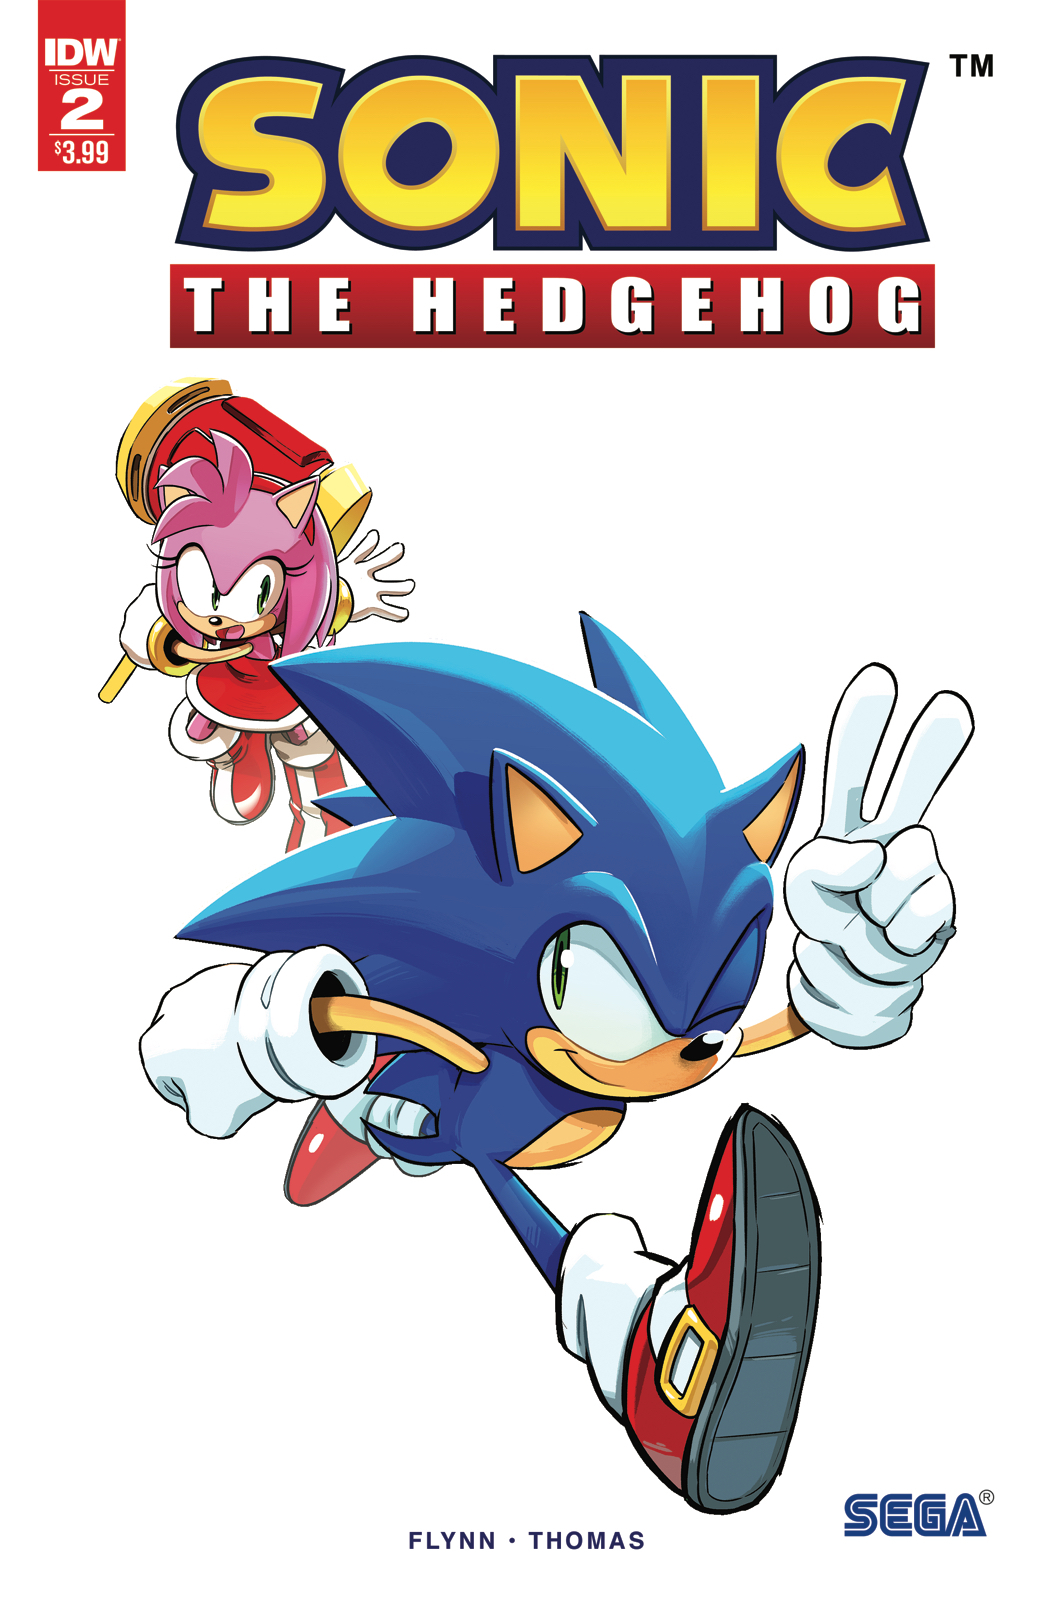 SONIC THE HEDGEHOG #2 2ND PTG